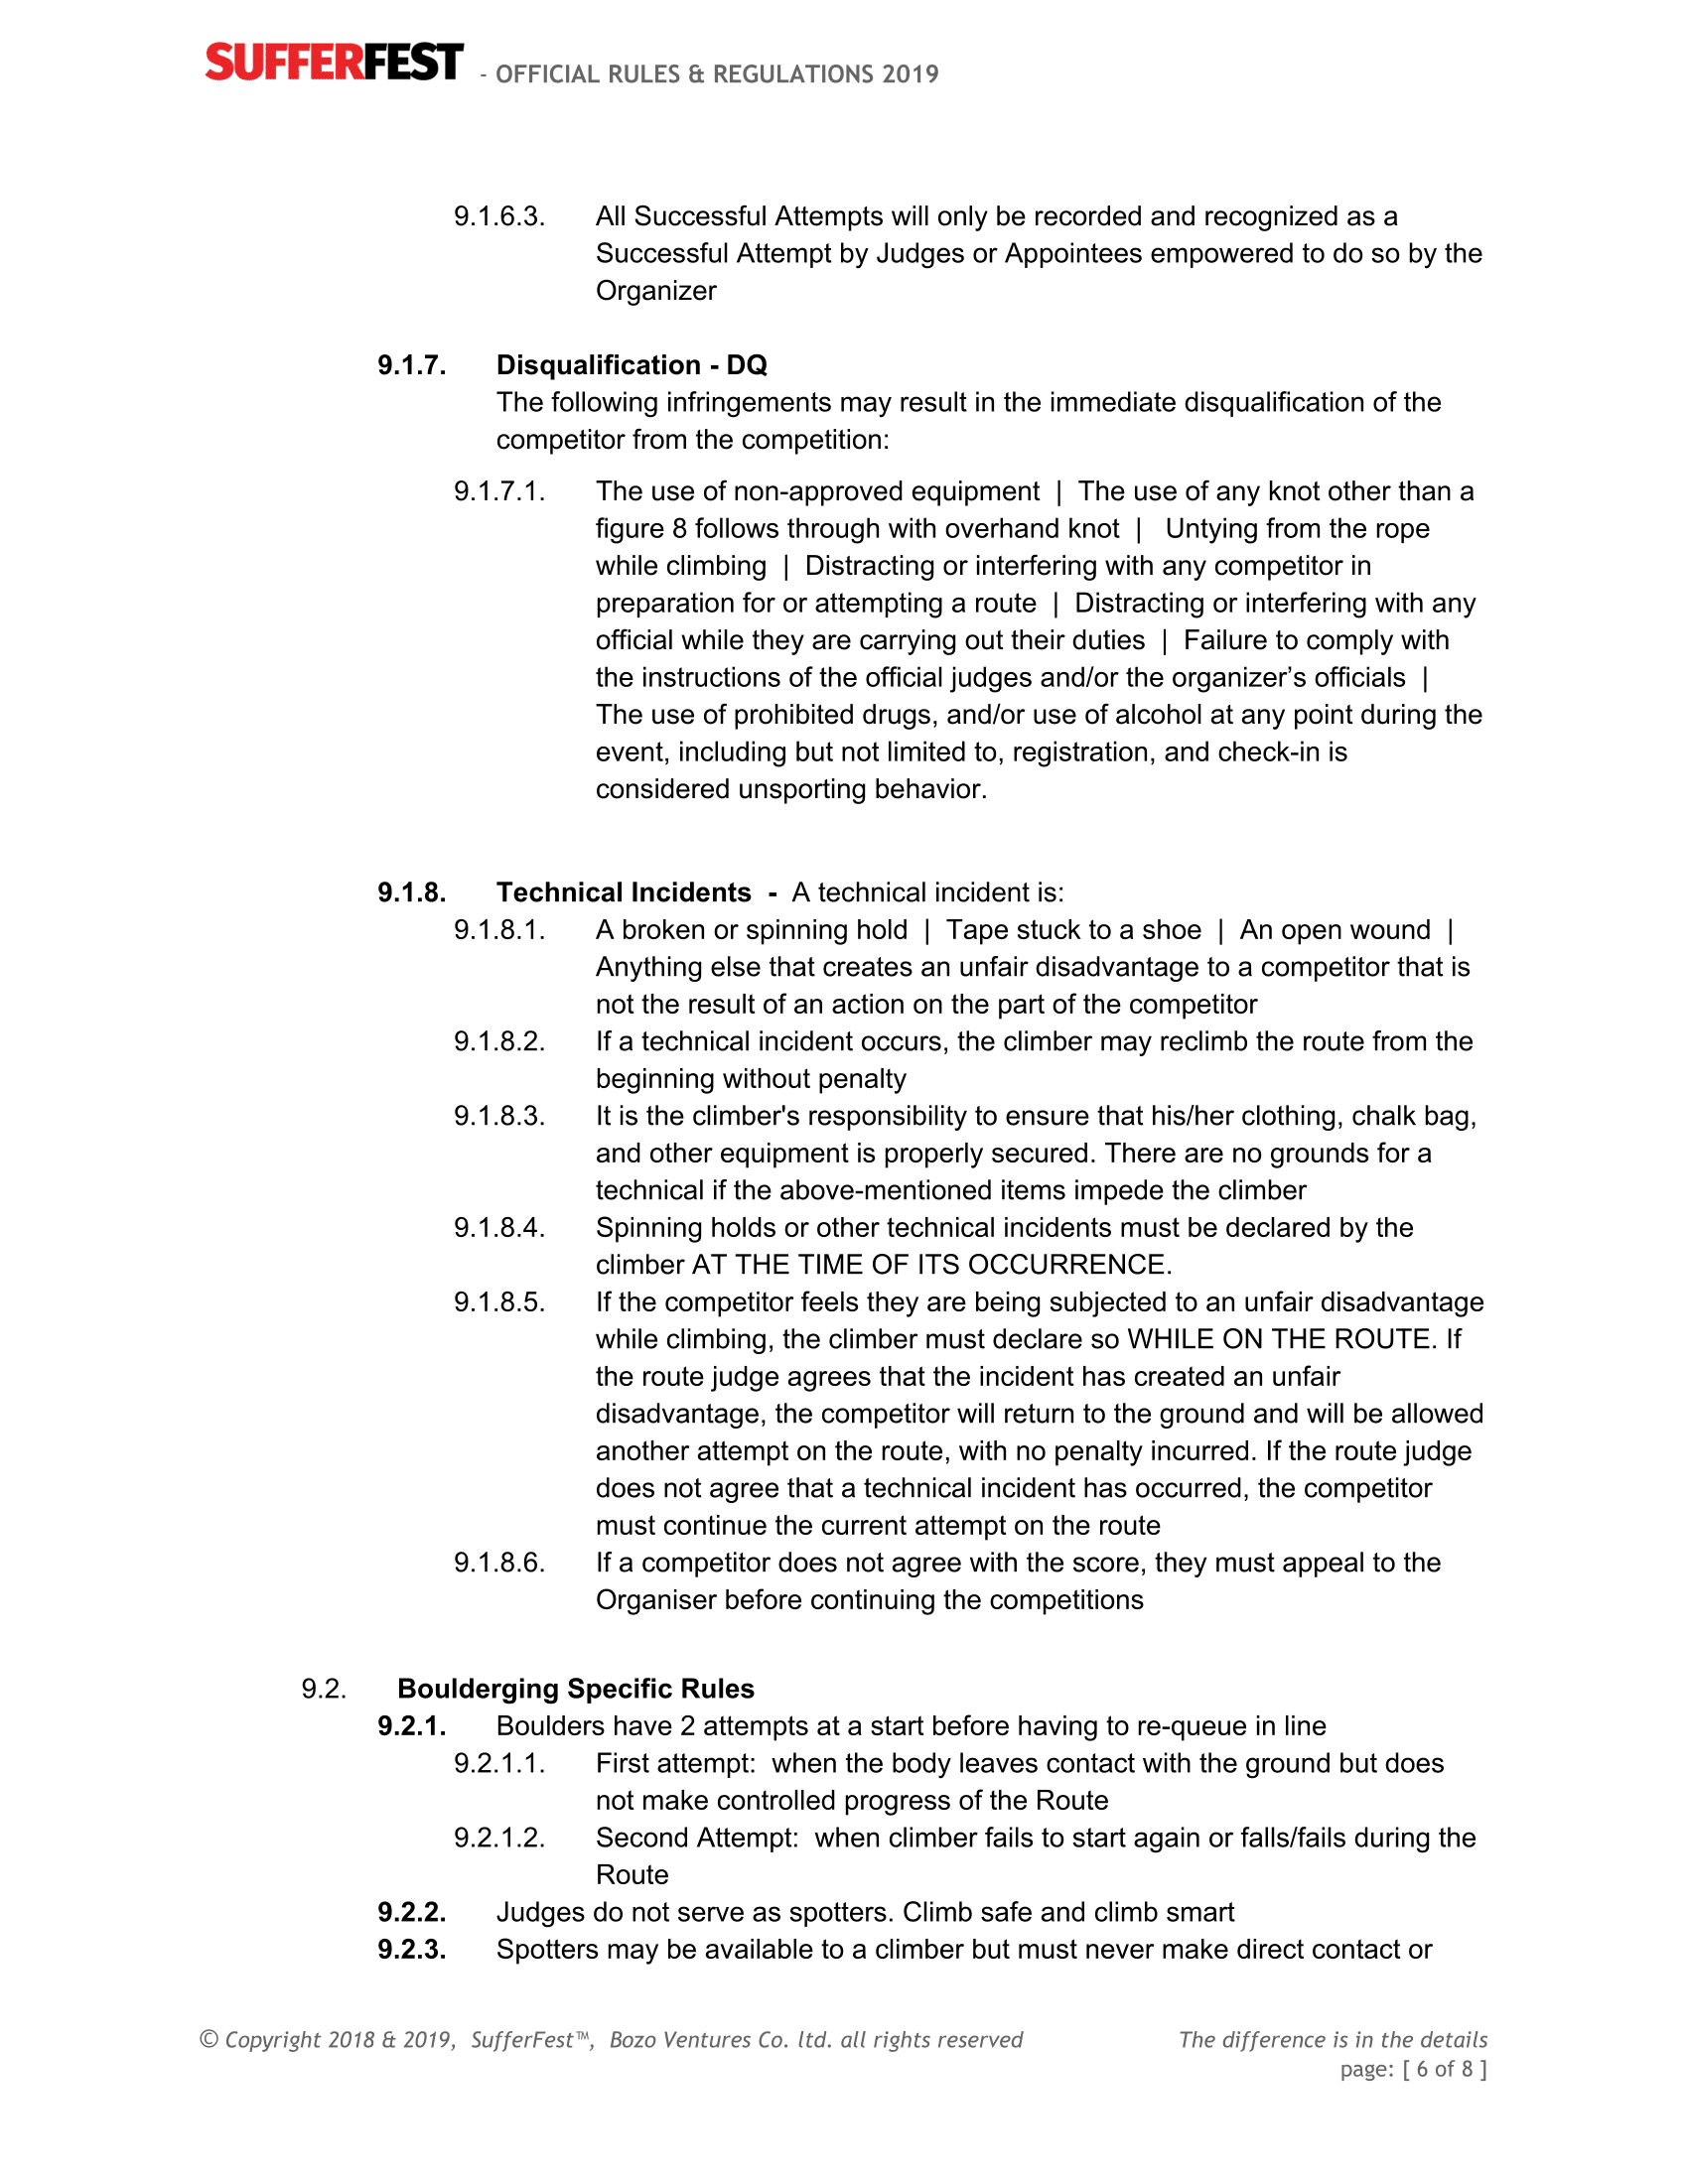 [ENG] SufferFest™ - Official Rules and Regulations - 20181022-7.png